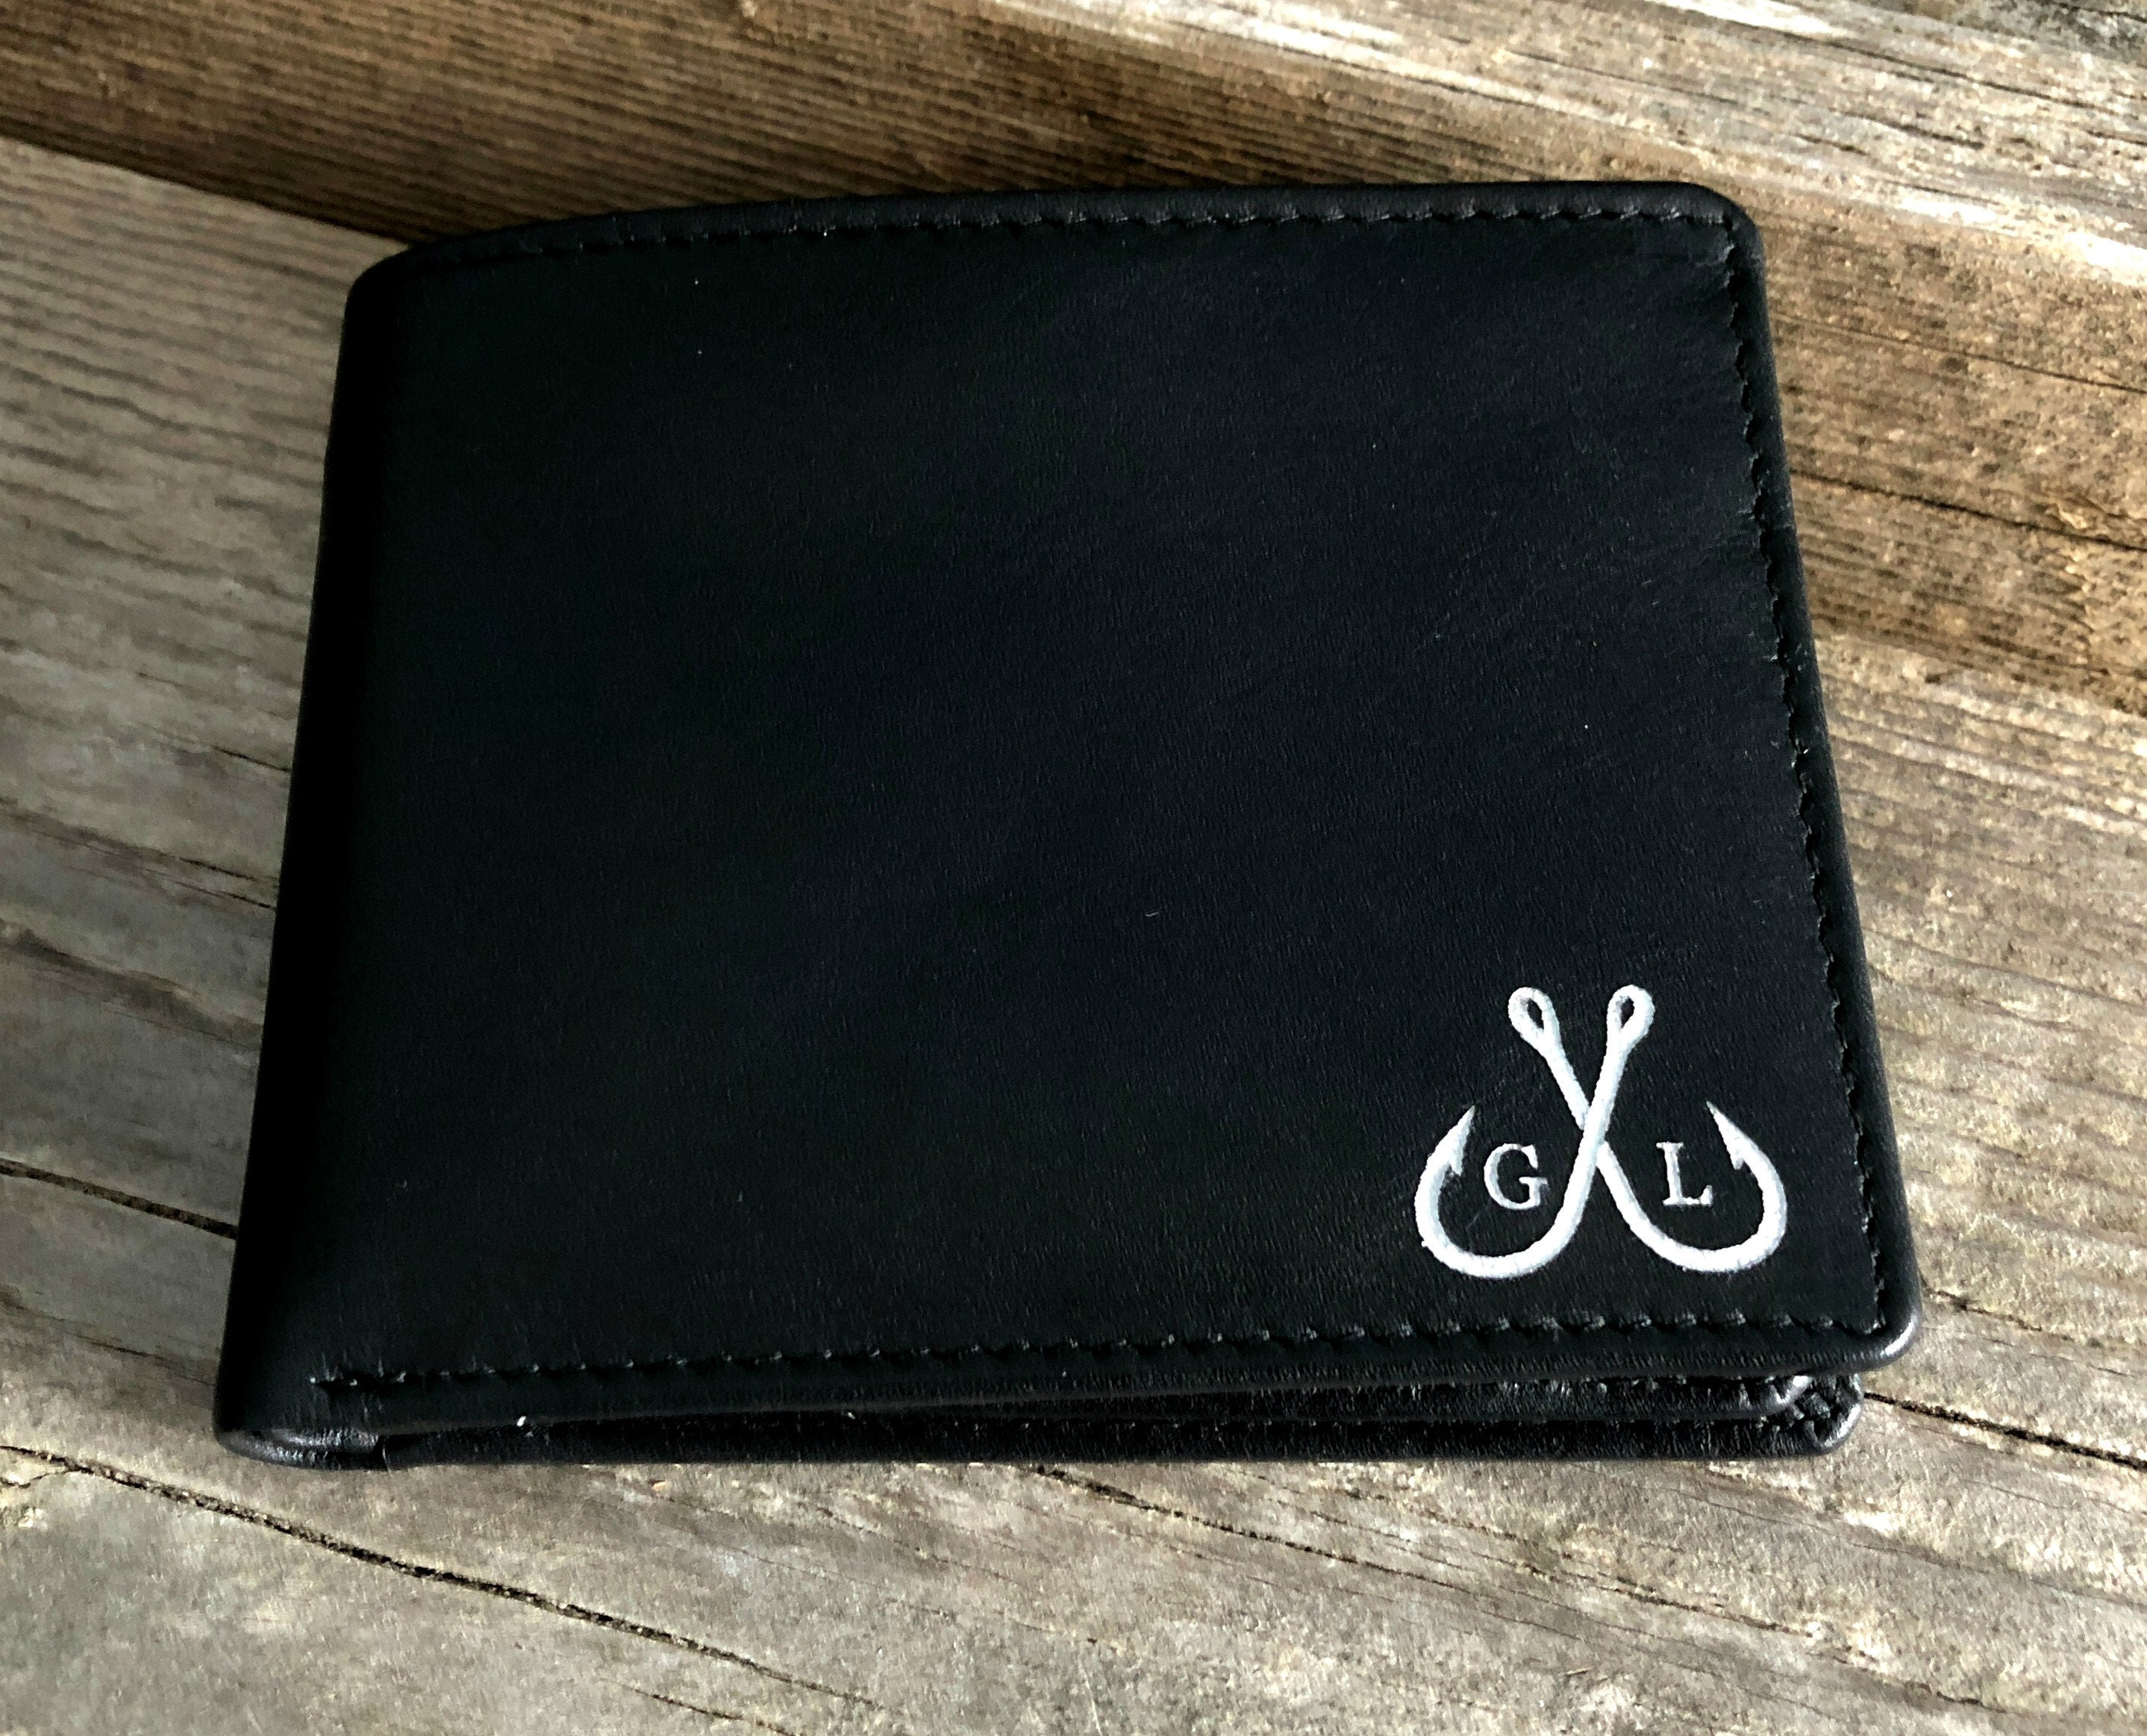 Leather wallet with money clip Its not flesh and blood but the hear that makes us father and daughter Love,enter name RFID engraving custom name or initials